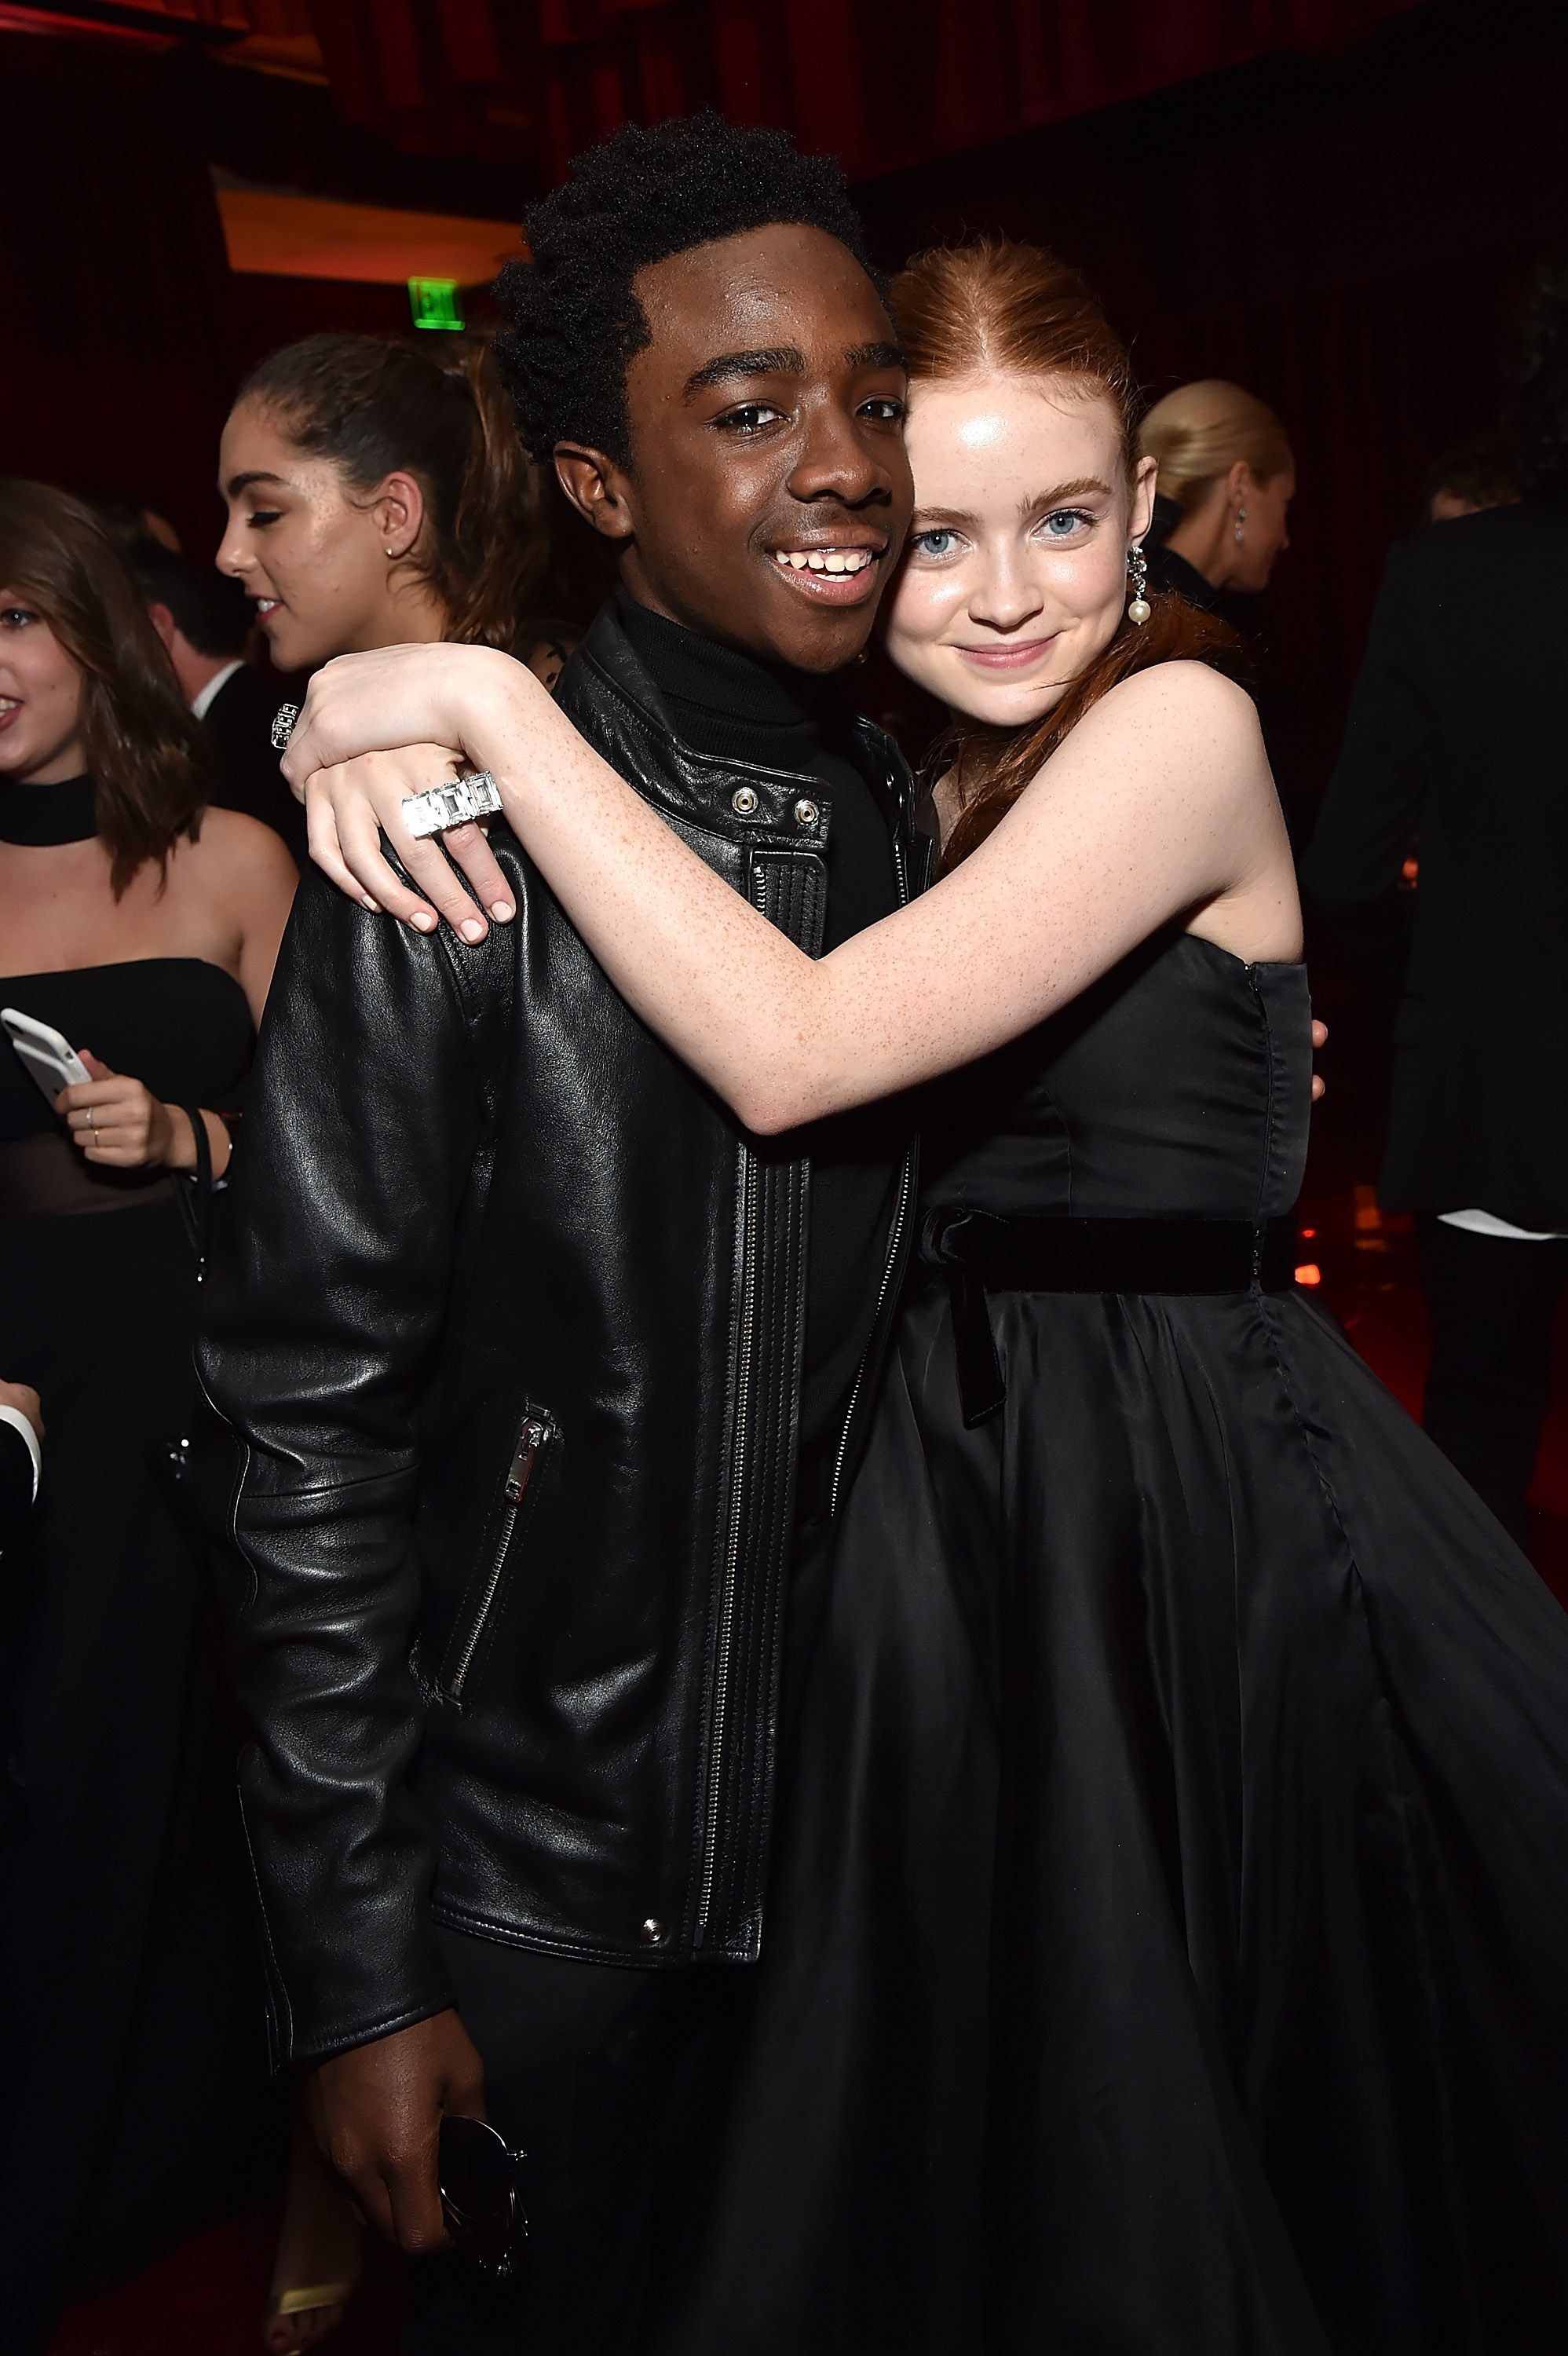 16 Photos That Prove the 'Stranger Things' Kids Had the Best Time at the Golden Globes